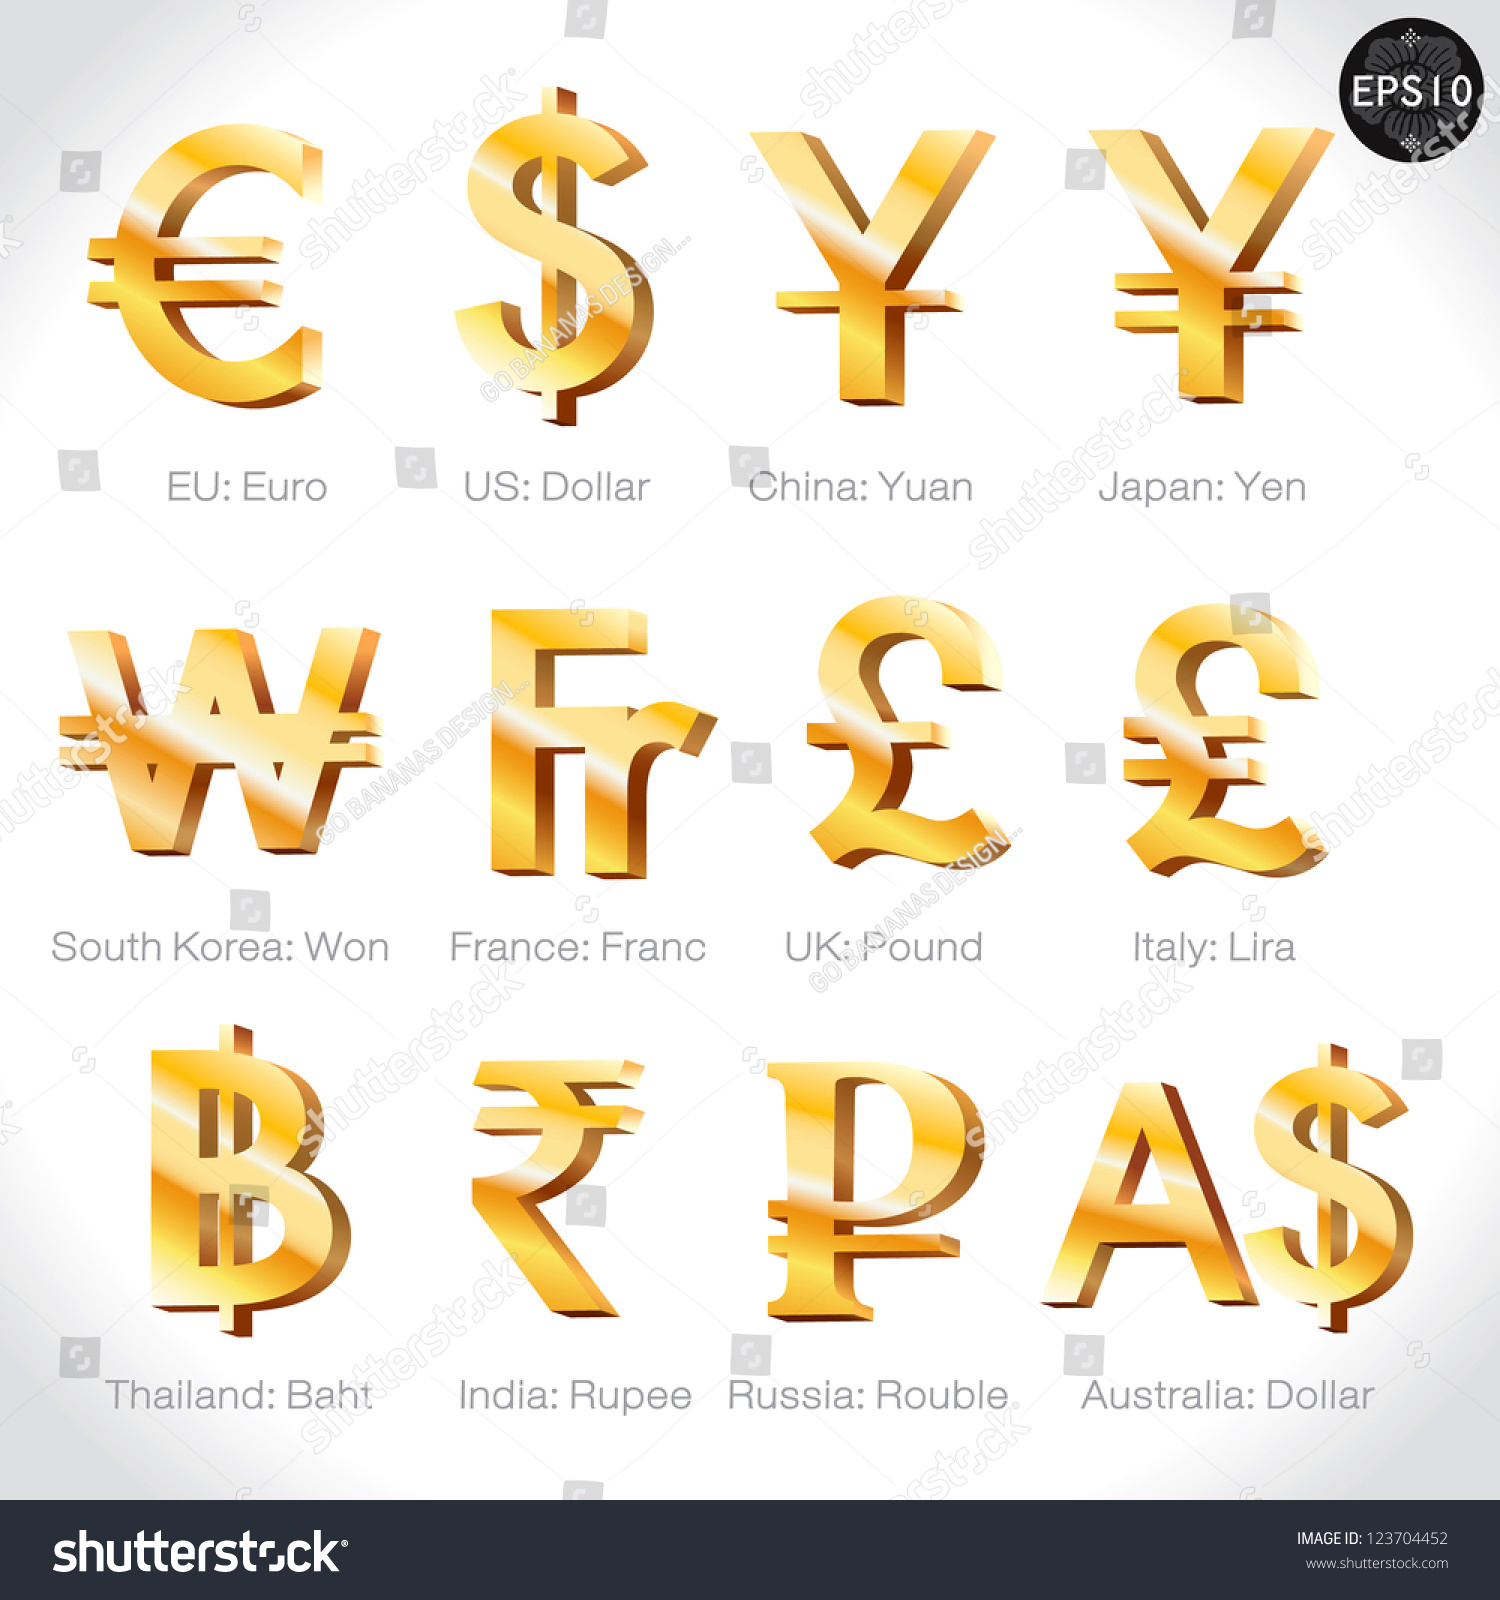 Royalty free currency signs dollar euro yen 123704452 stock currency signs dollar euro yen yuan wonfrancpoundlira baht rupee rouble pound vector money symbol stock photo biocorpaavc